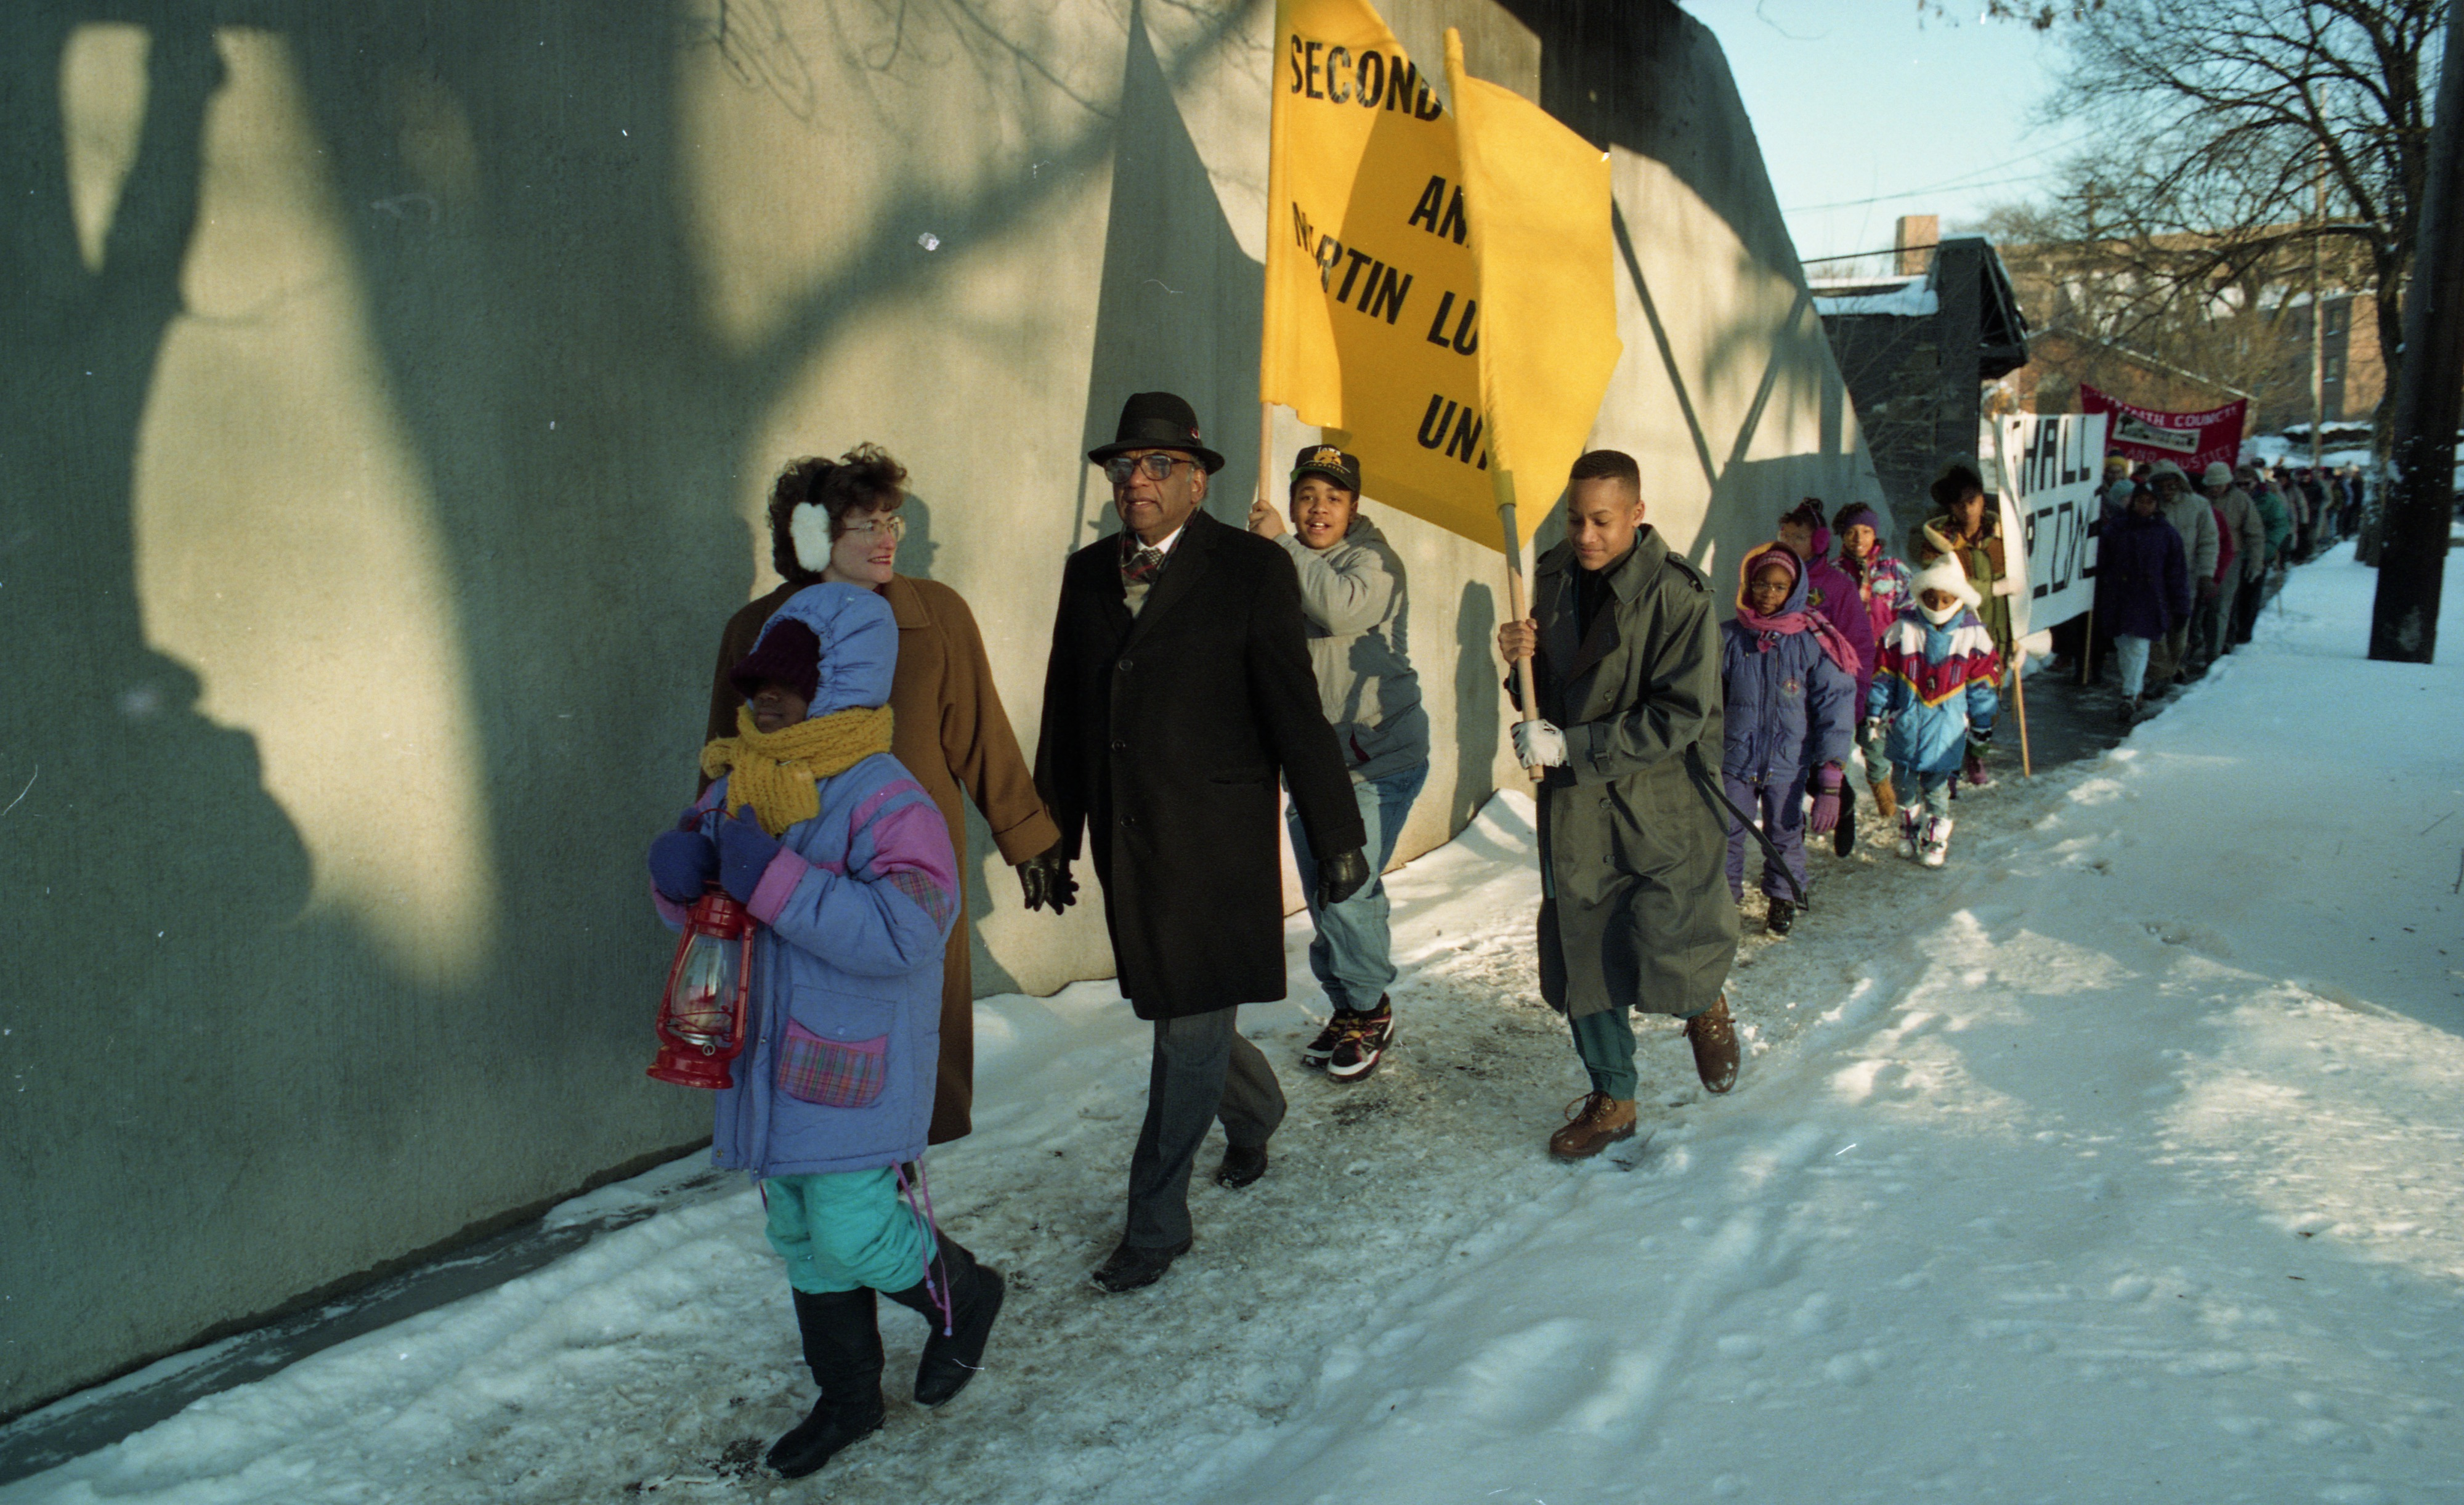 Banners Lead the Second Baptist Church Annual Unity March To Honor Dr. Martin Luther King Jr., January 1994 image